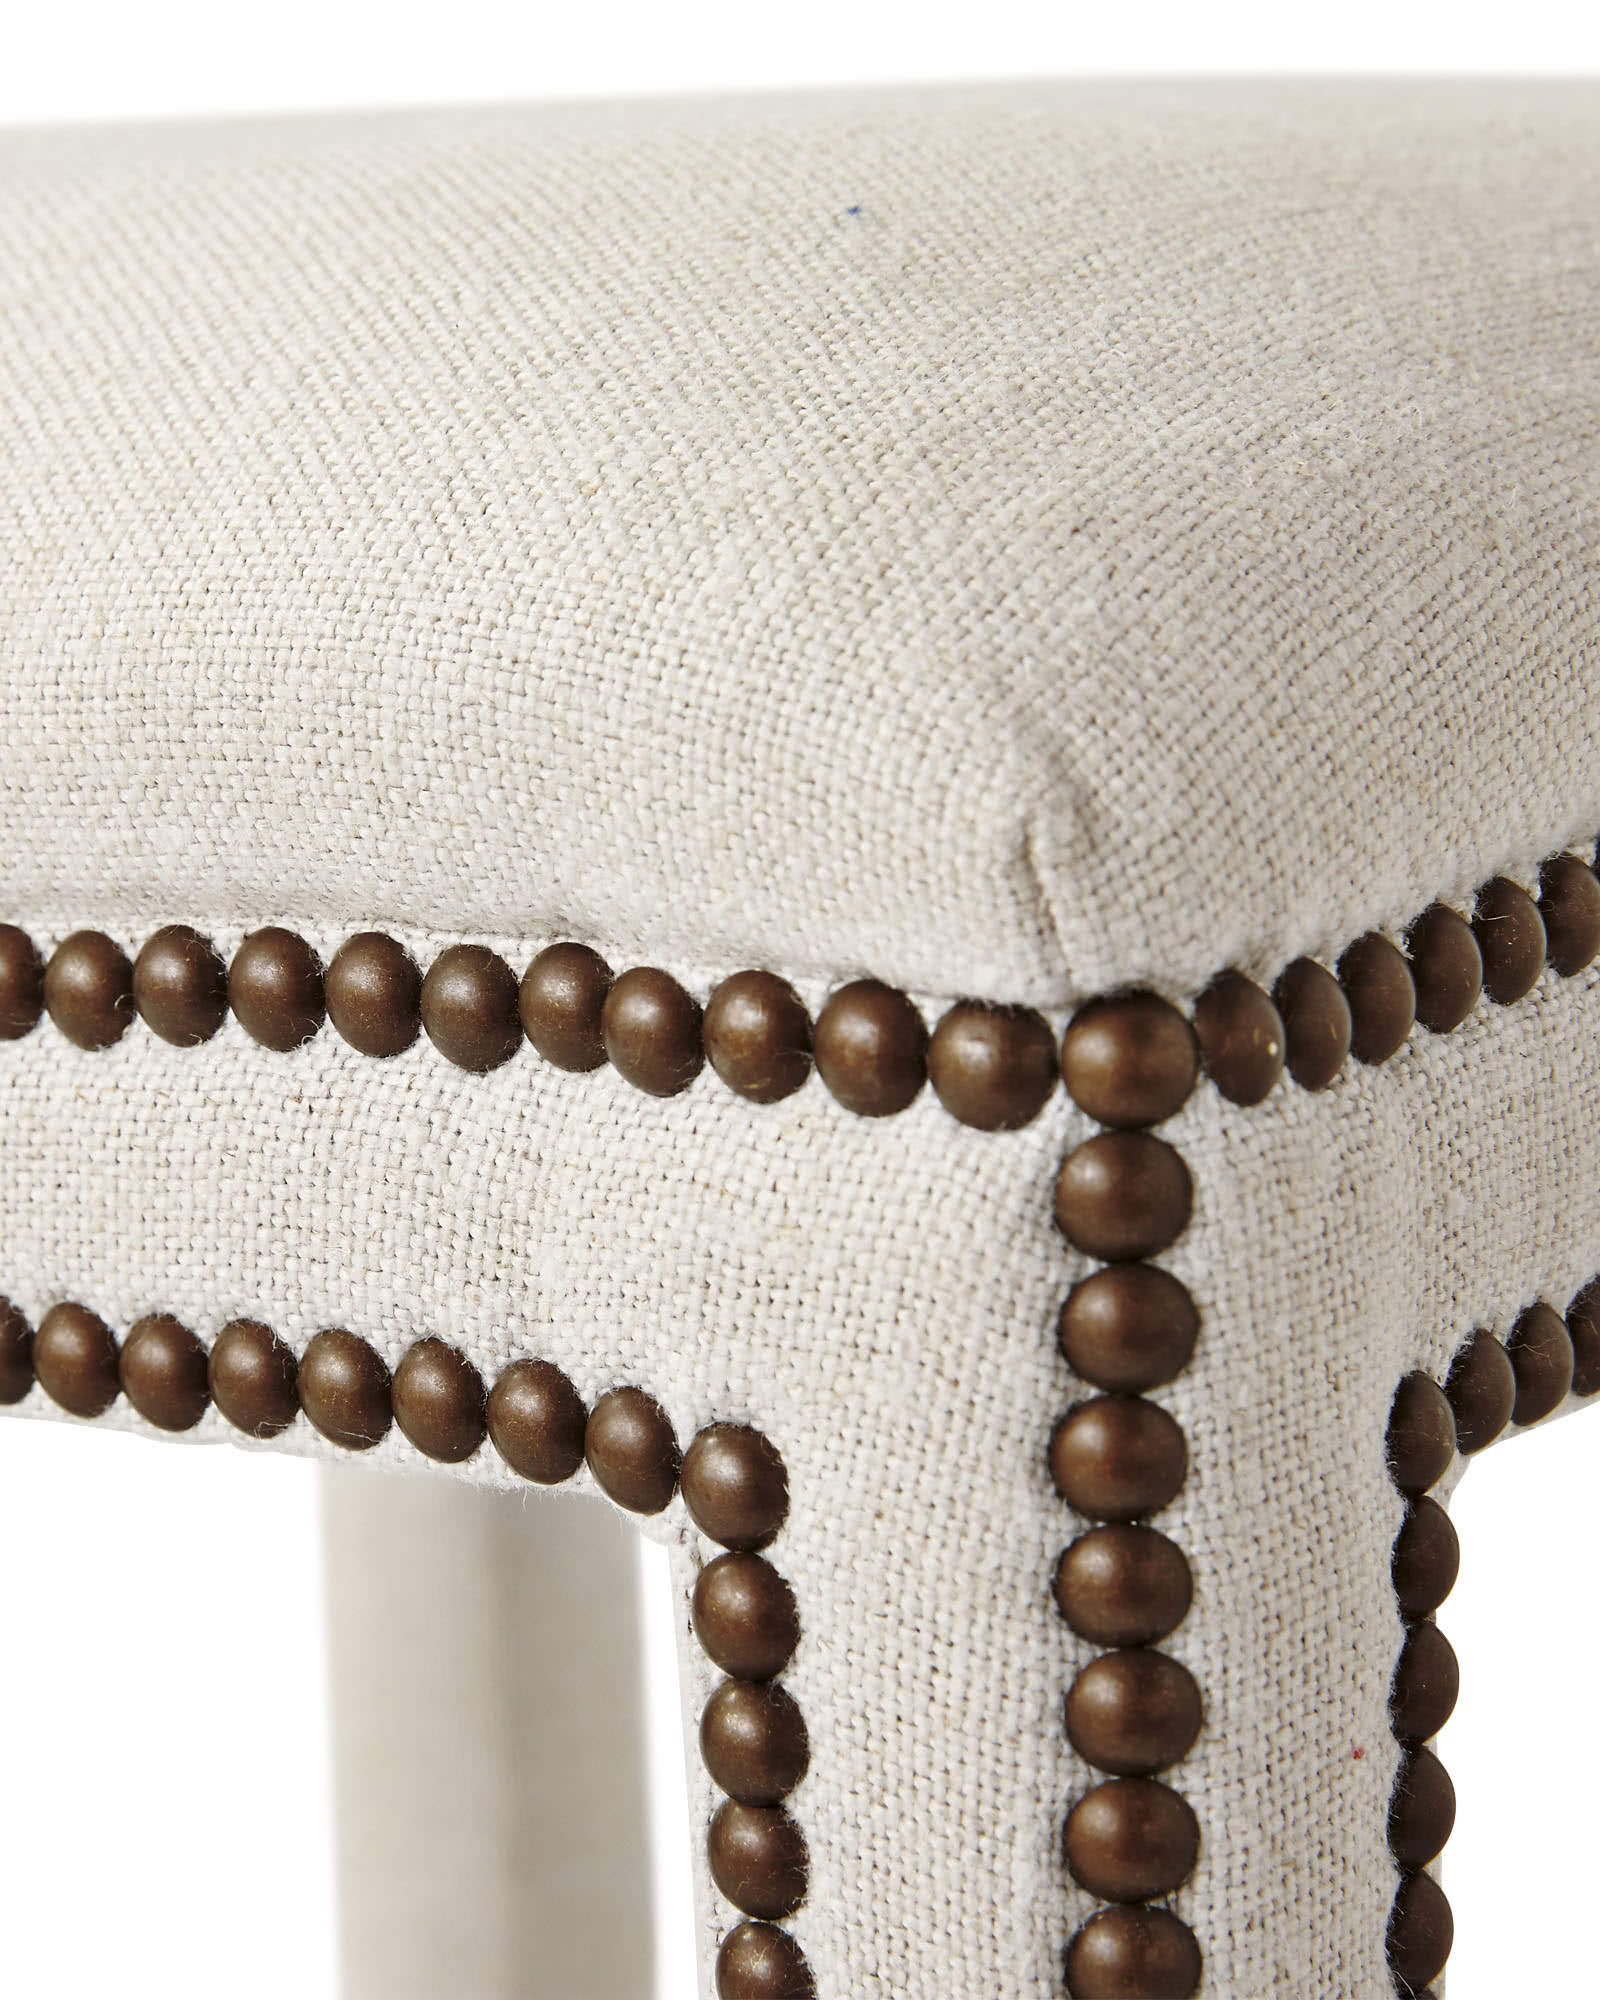 Dorset Stool with Nailheads,